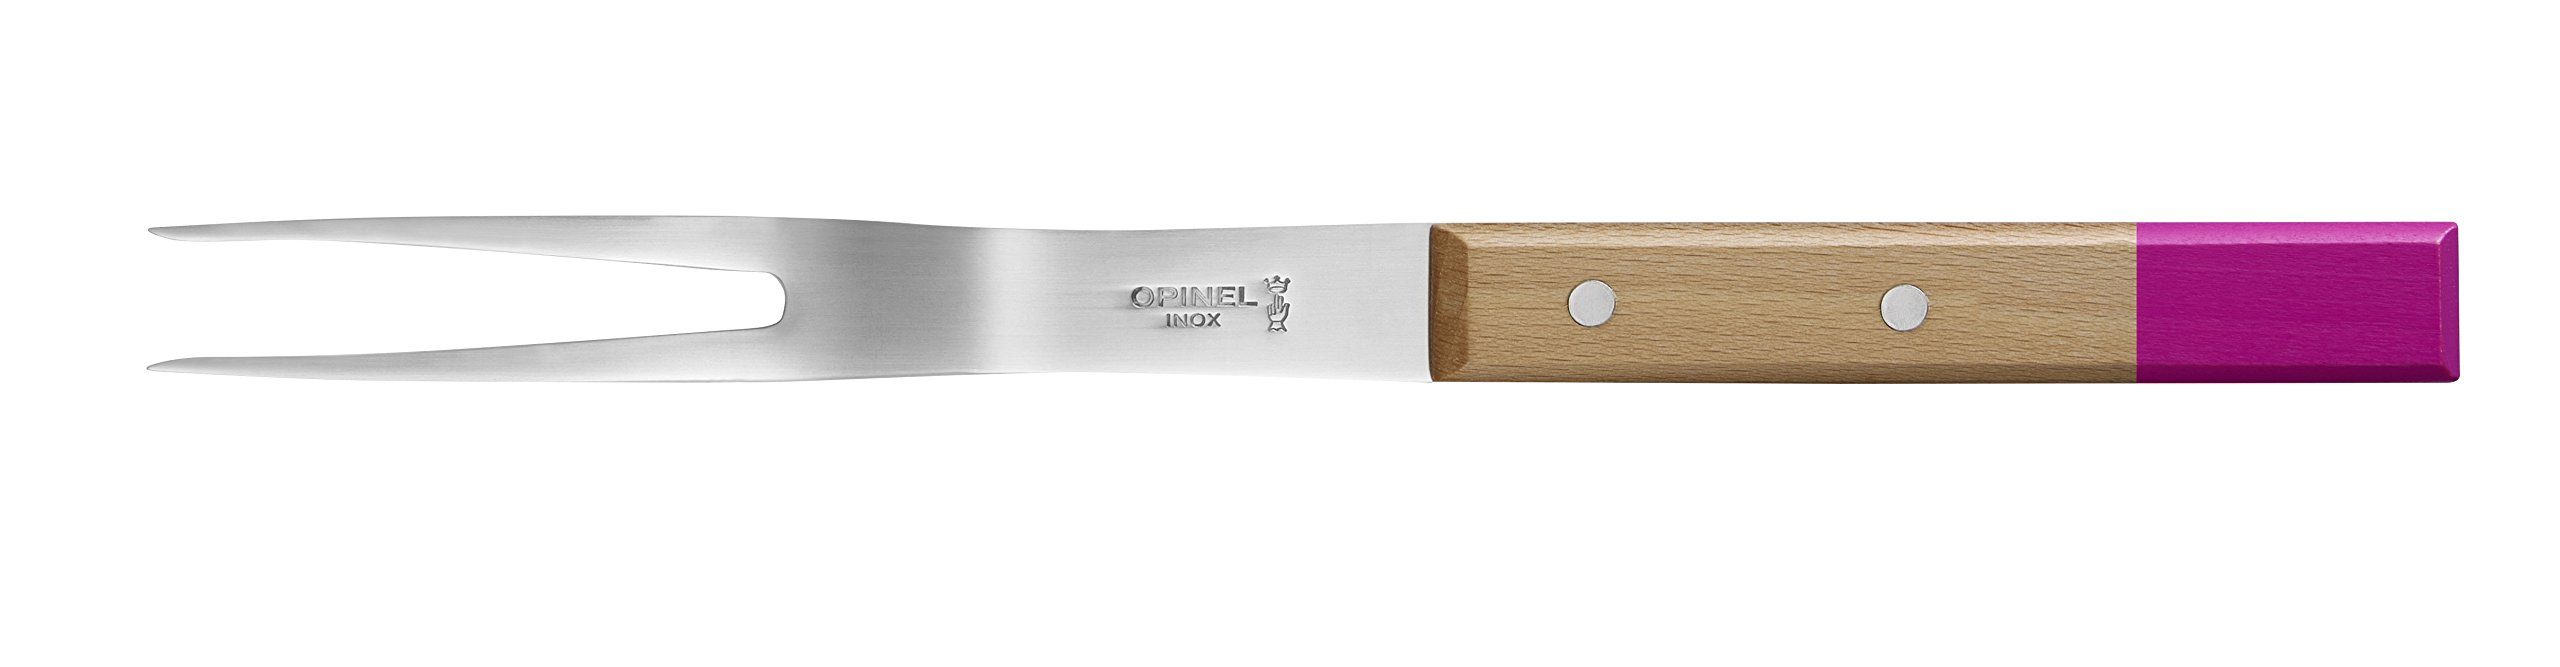 Opinel No 124 Stainless Steel Carving Fork